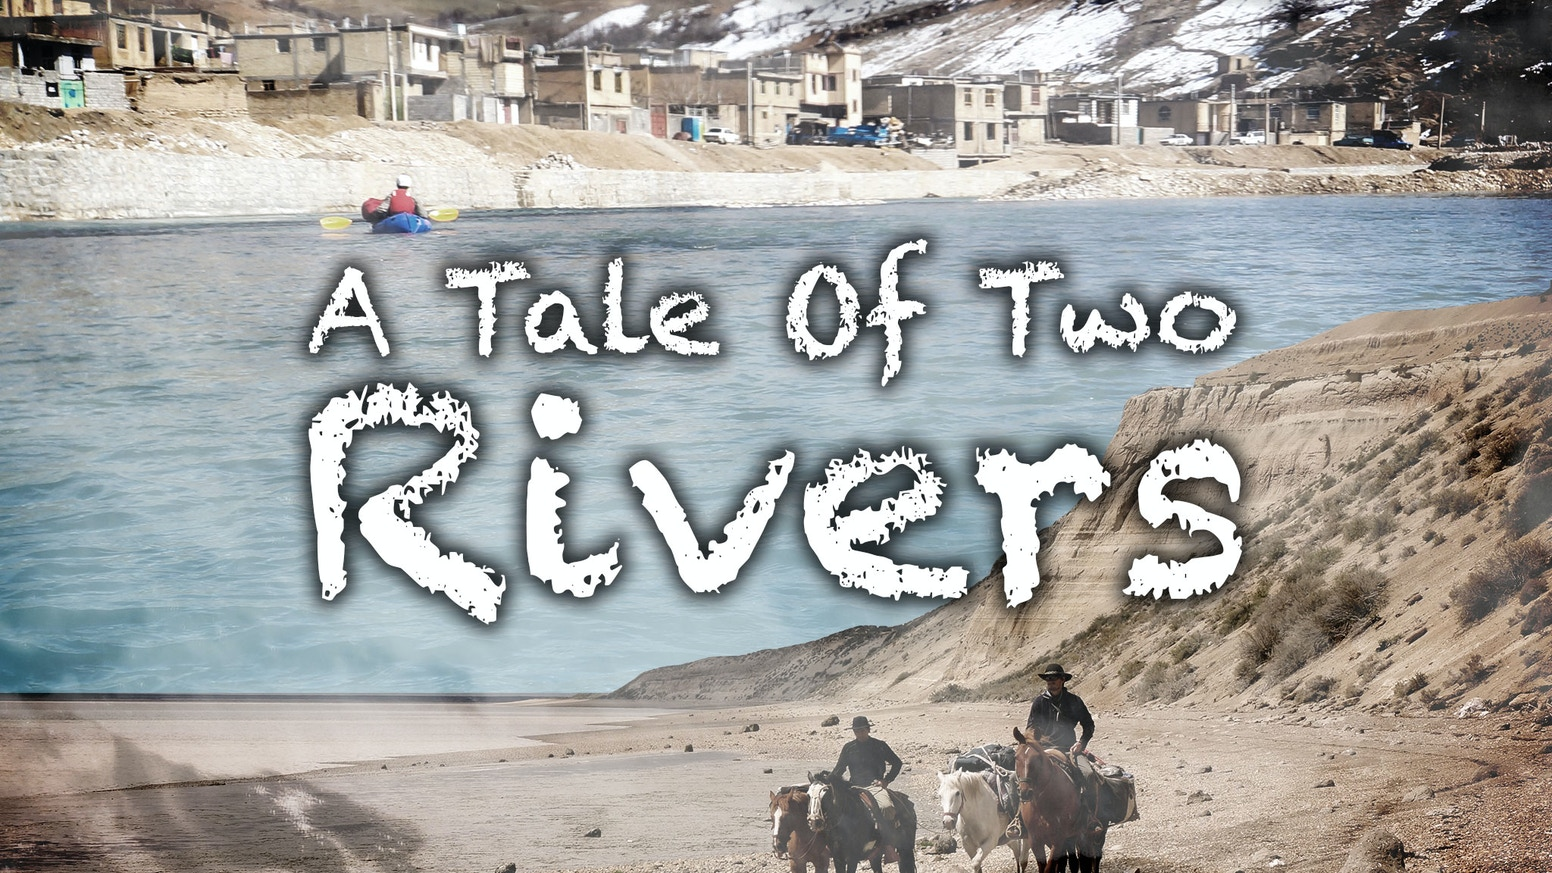 In 2014, Two Filmmakers Followed Wilderness Rivers Through Iran And  Patagonia This Project Produced